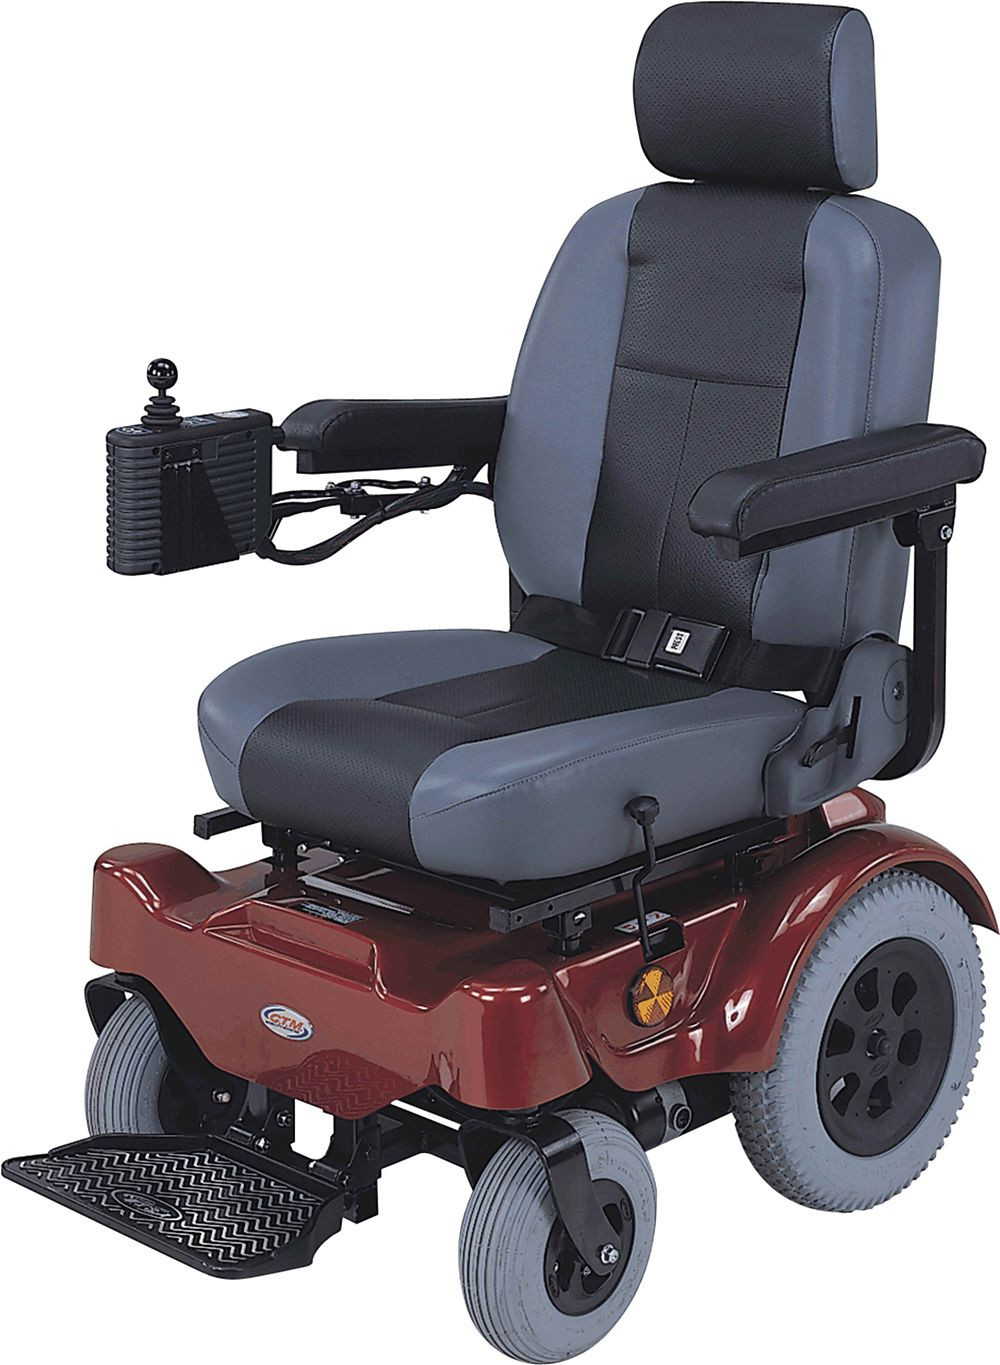 ctm hs 5600 power wheelchair for sale lowest prices tax